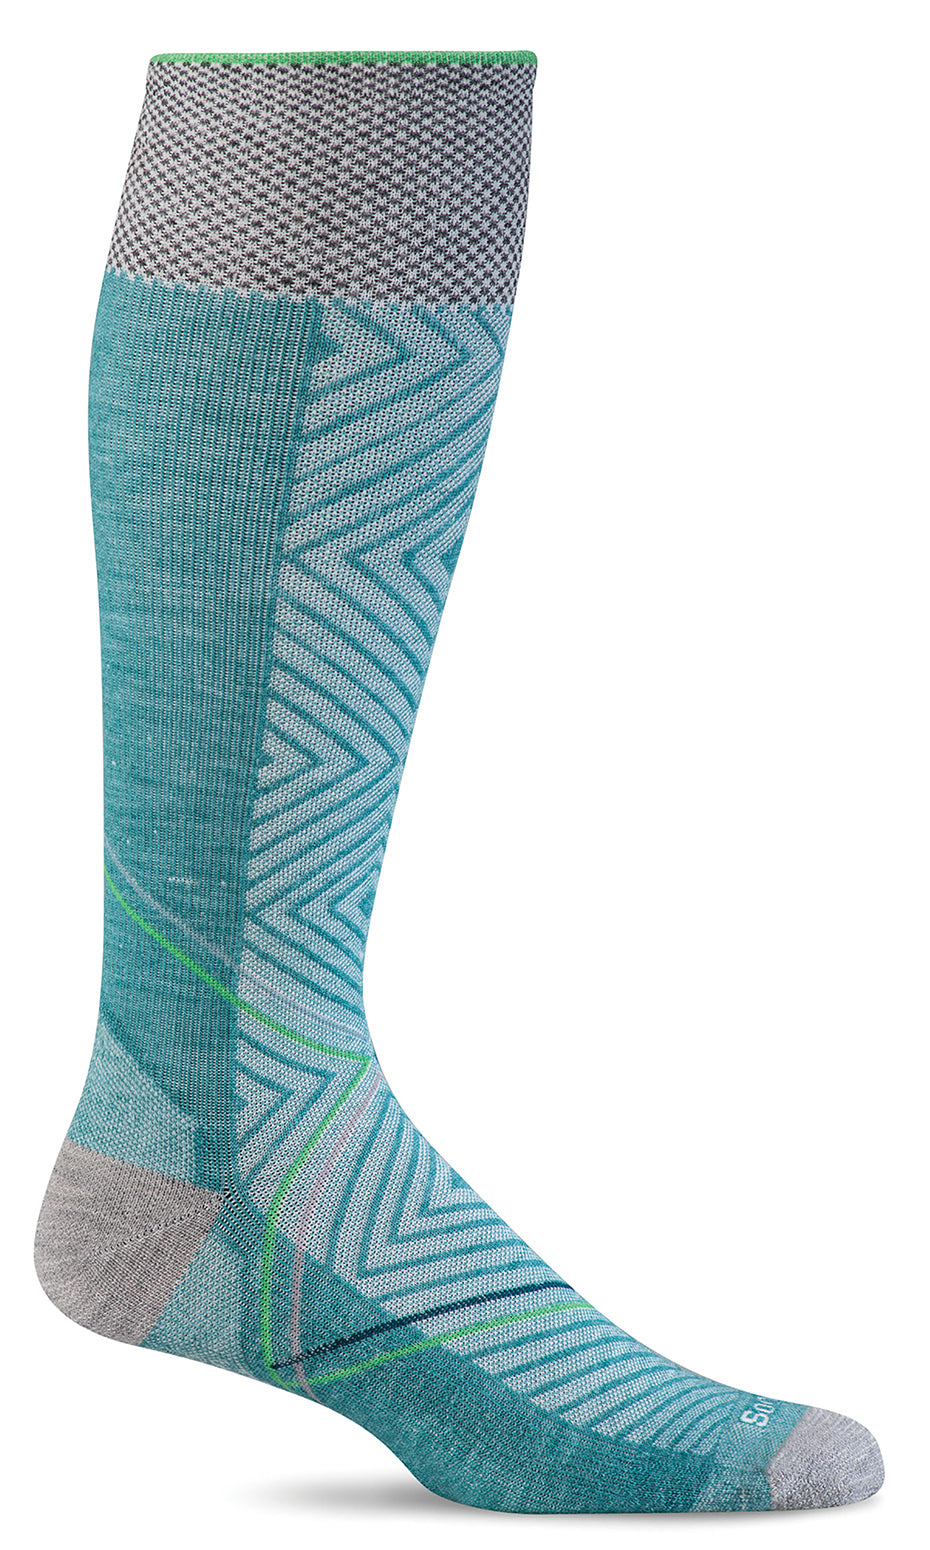 Pulse Knee-High - Mineral Firm Compression (20-30mmHG)